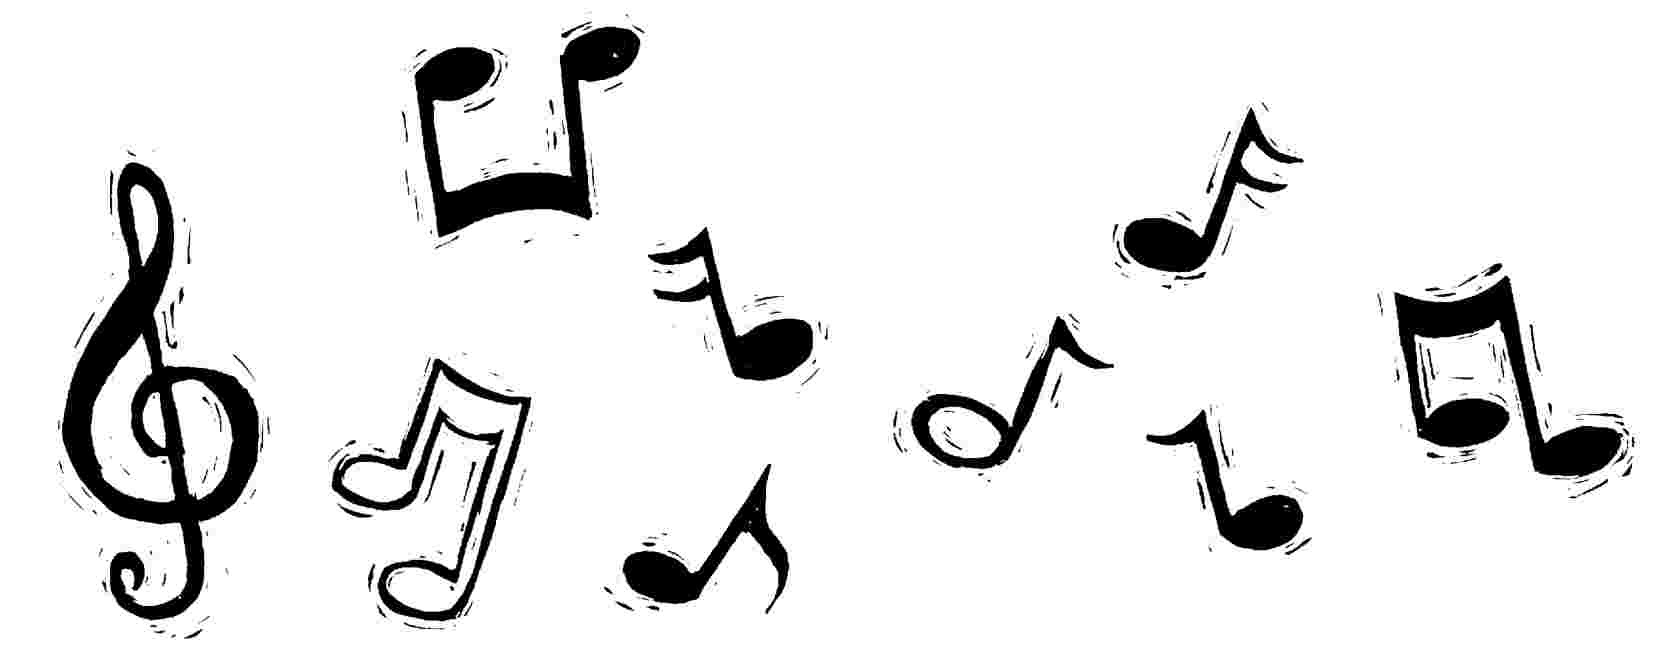 Musical Notes Symbols Tattoos Clipart Panda Free Clipart Images